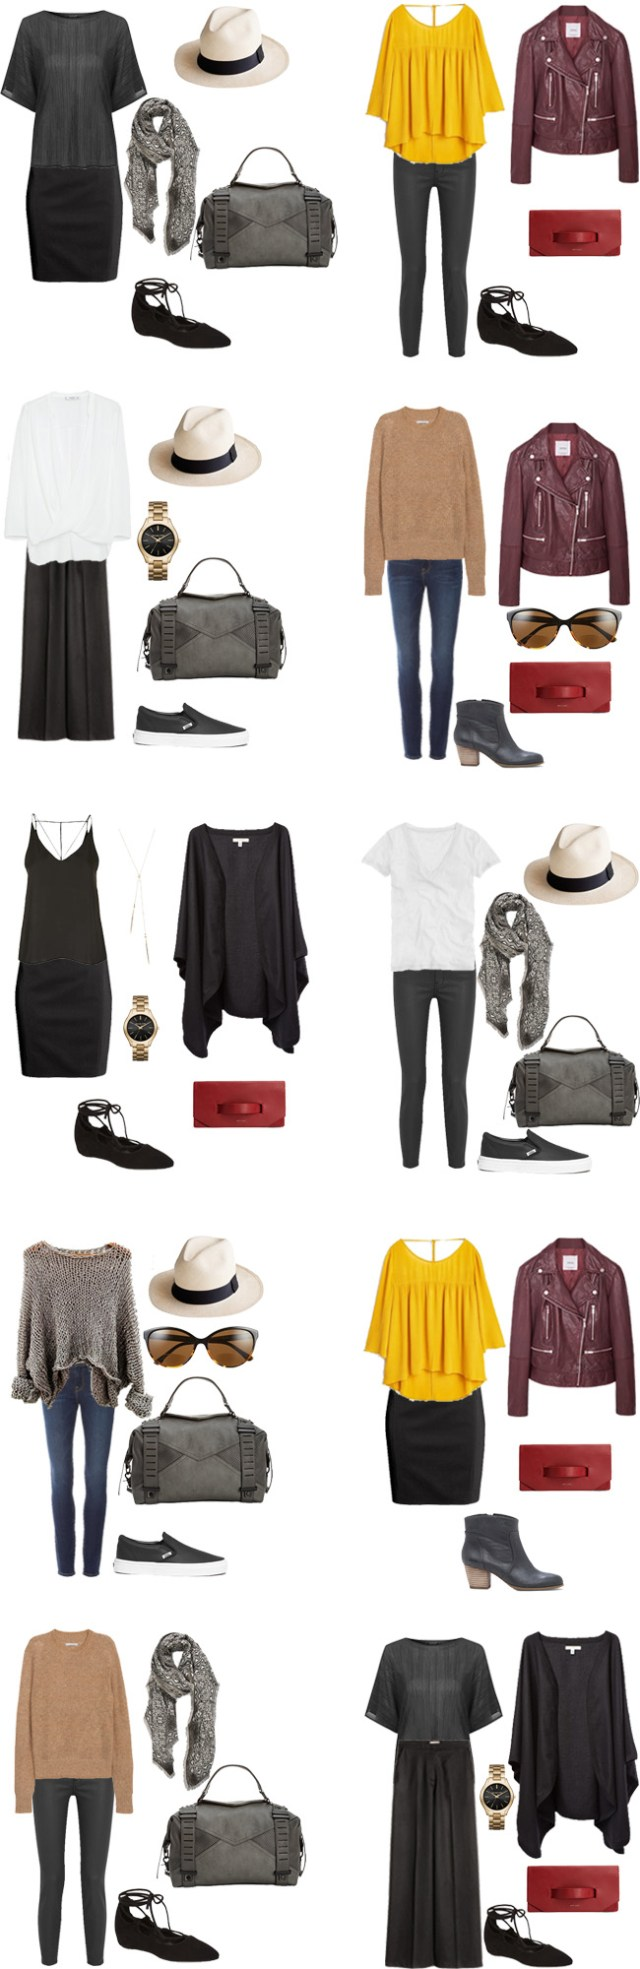 What to Wear in Paris, France Outfits 11-20 #packinglight #travellight #traveltips